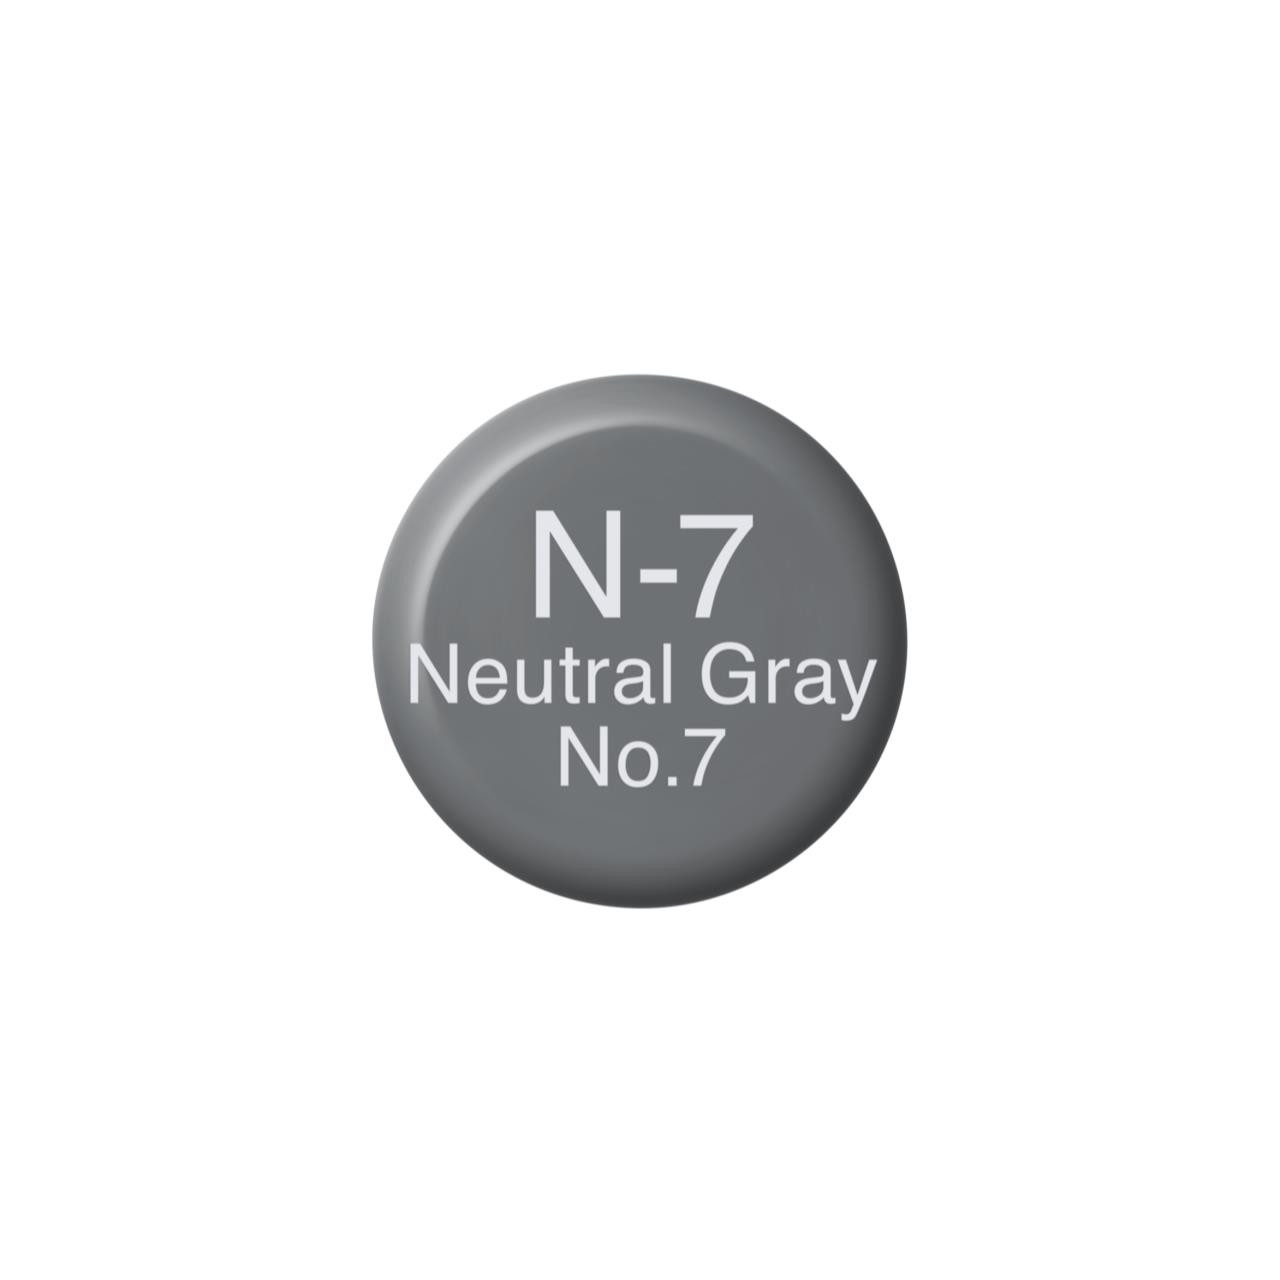 N7 Neutral Gray 7, Copic Ink - 4511338055502